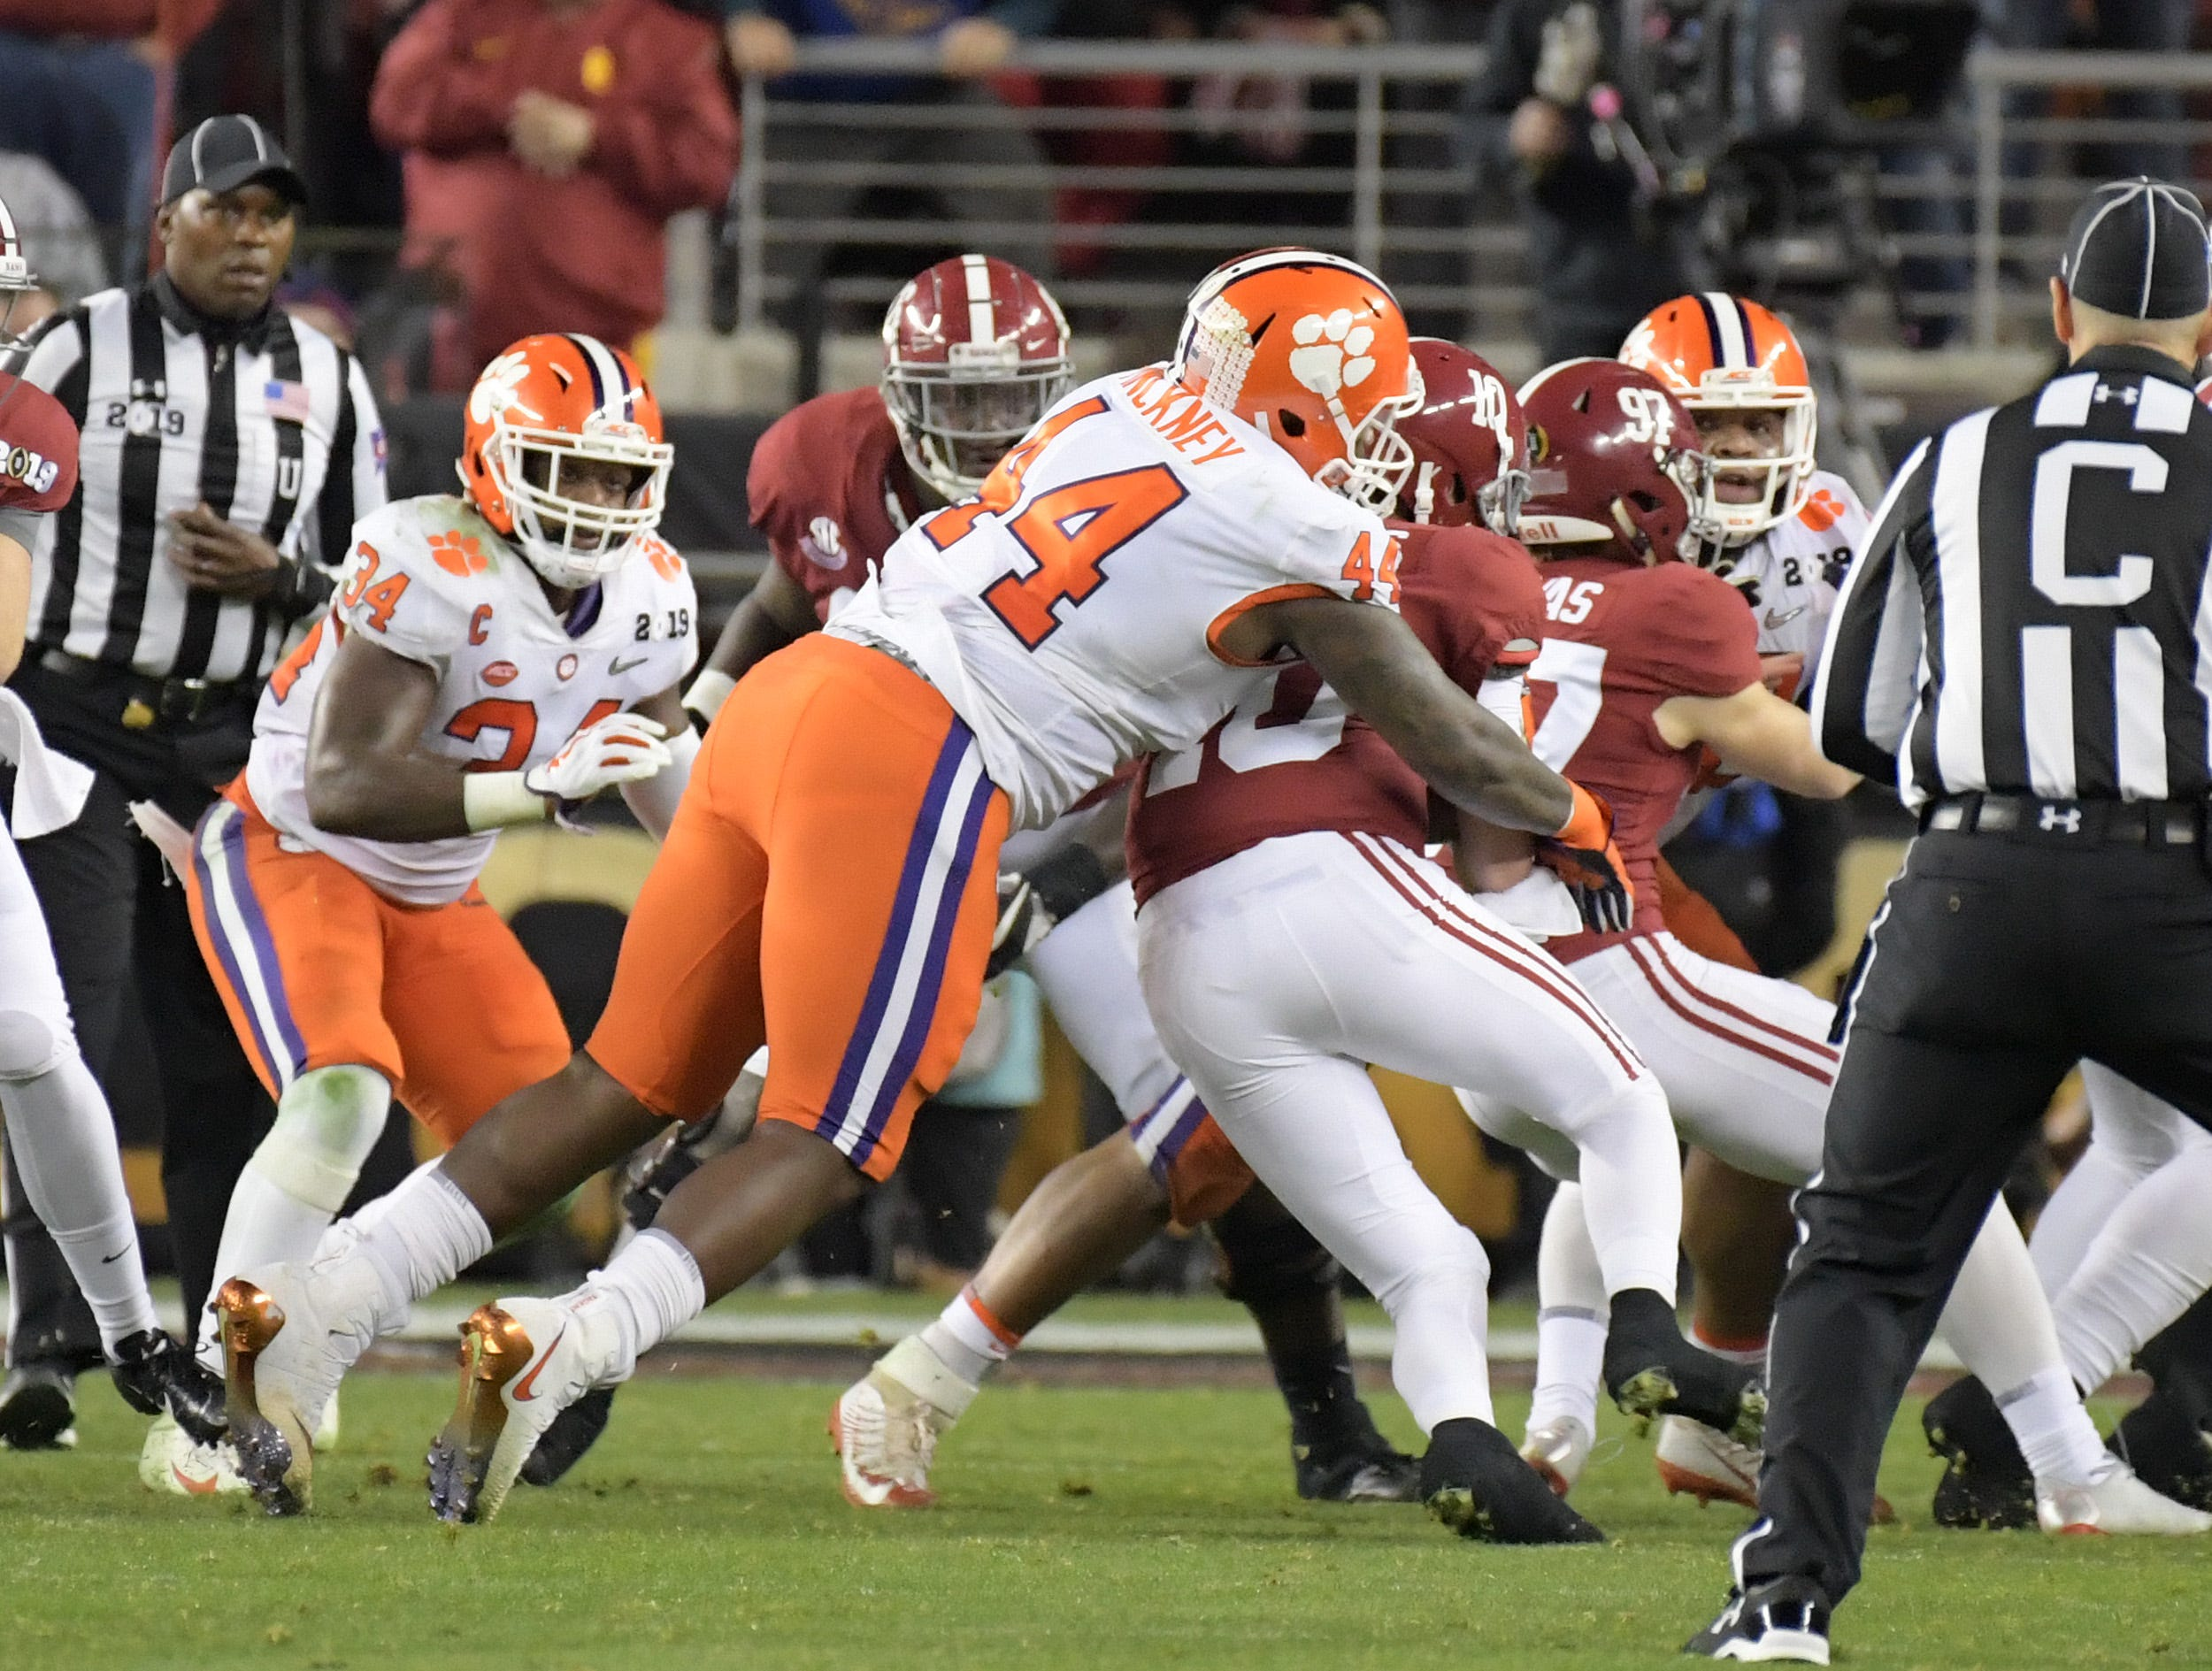 Clemson Tigers defensive tackle Nyles Pinckney (44) tackles Alabama Crimson Tide quarterback Mac Jones (10) in the third quarter in the during the 2019 College Football Playoff Championship game at Levi's Stadium on Jan. 7, 2019, in Santa Clara, CA.